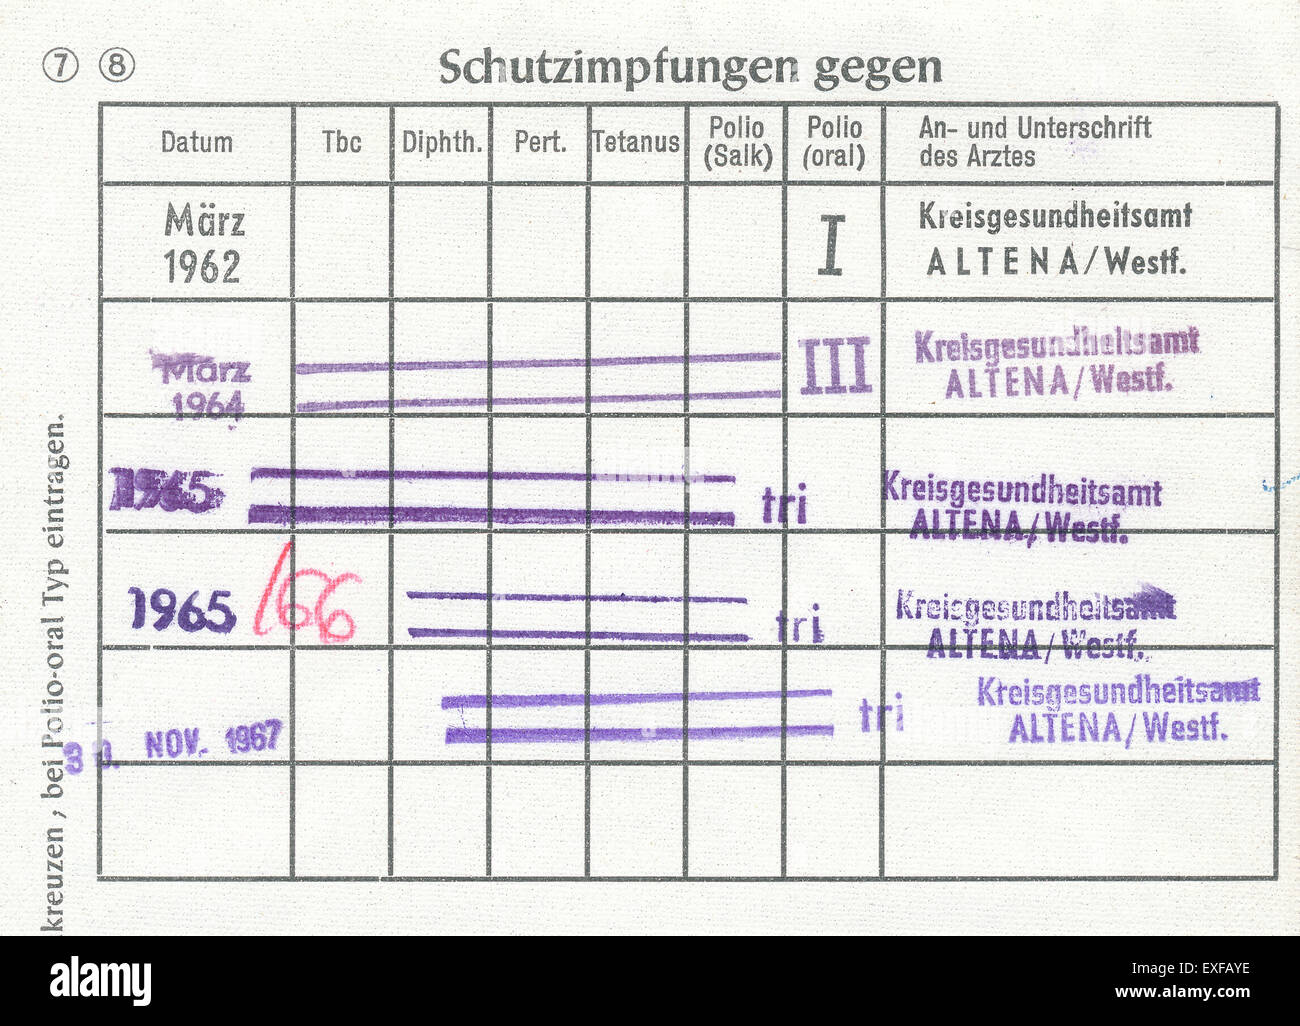 Vaccination record card, Germany, 1960, Europe Stock Photo